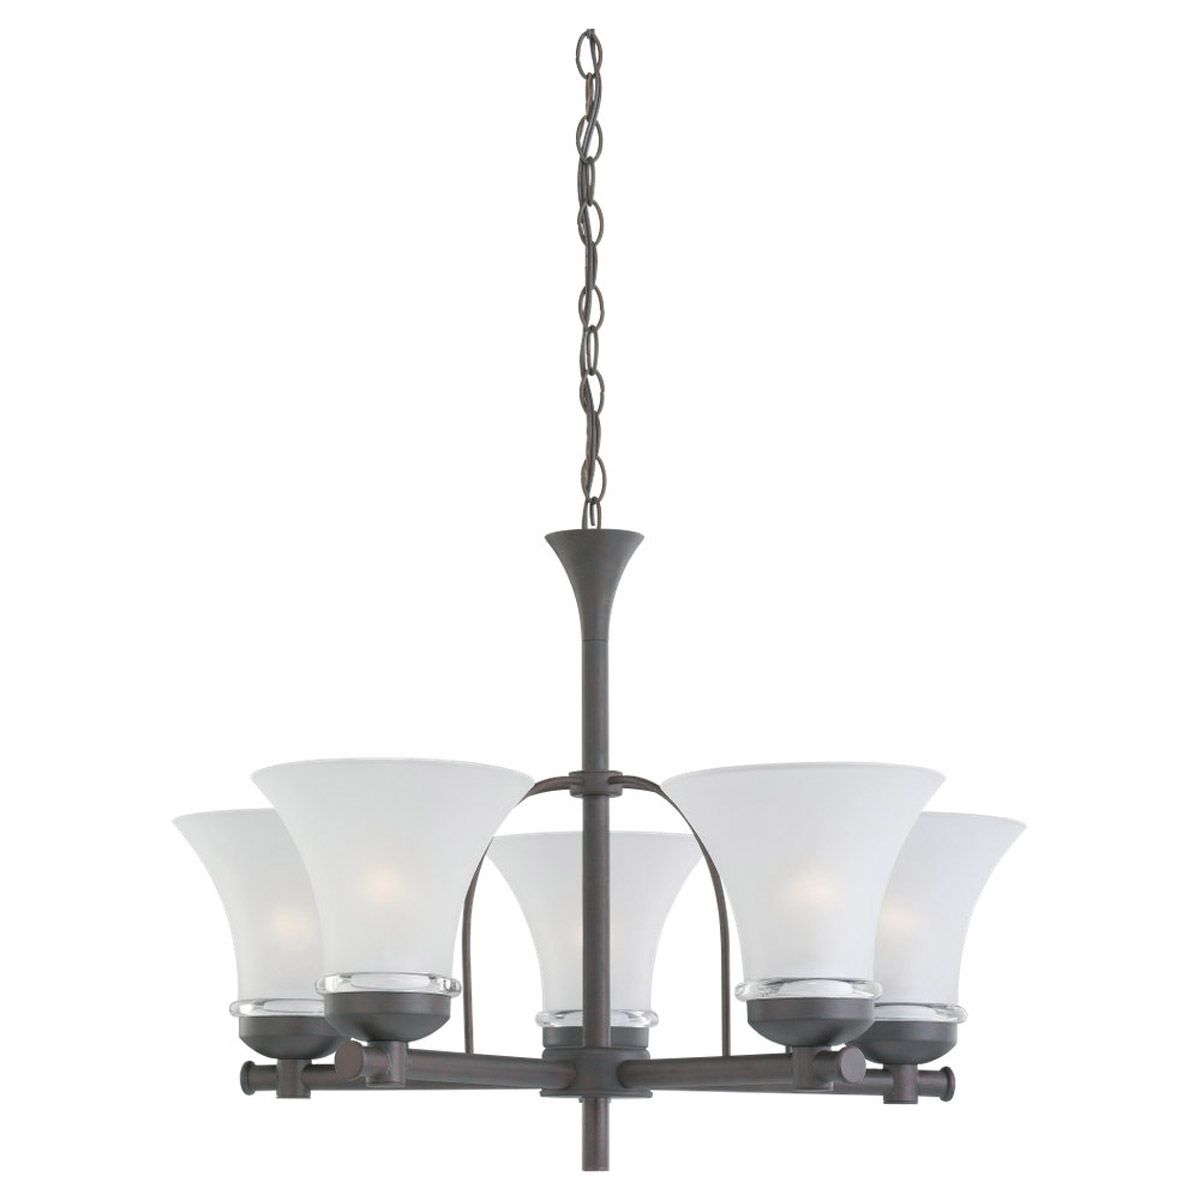 Sea Gull Lighting Newport 5 Light Fluorescent Chandelier in Misted Bronze 31283BLE-814